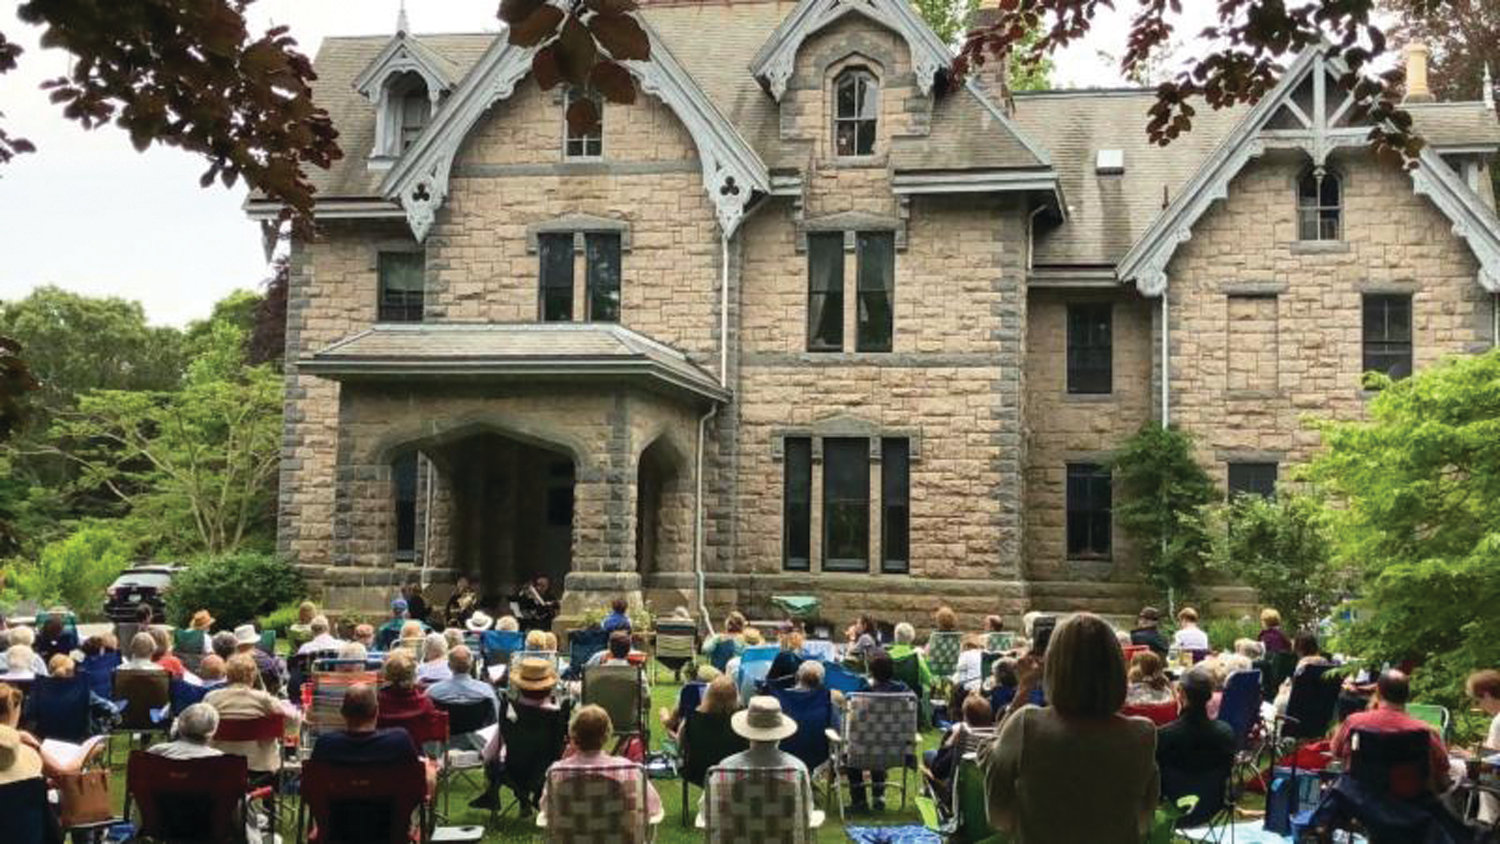 GREAT OUTDOORS: The Music on the Hill festival will return to Clouds Hill Victorian House Museum in Warwick for this year's opening performance on June 2, featuring the Narragansett Brass Quintet.